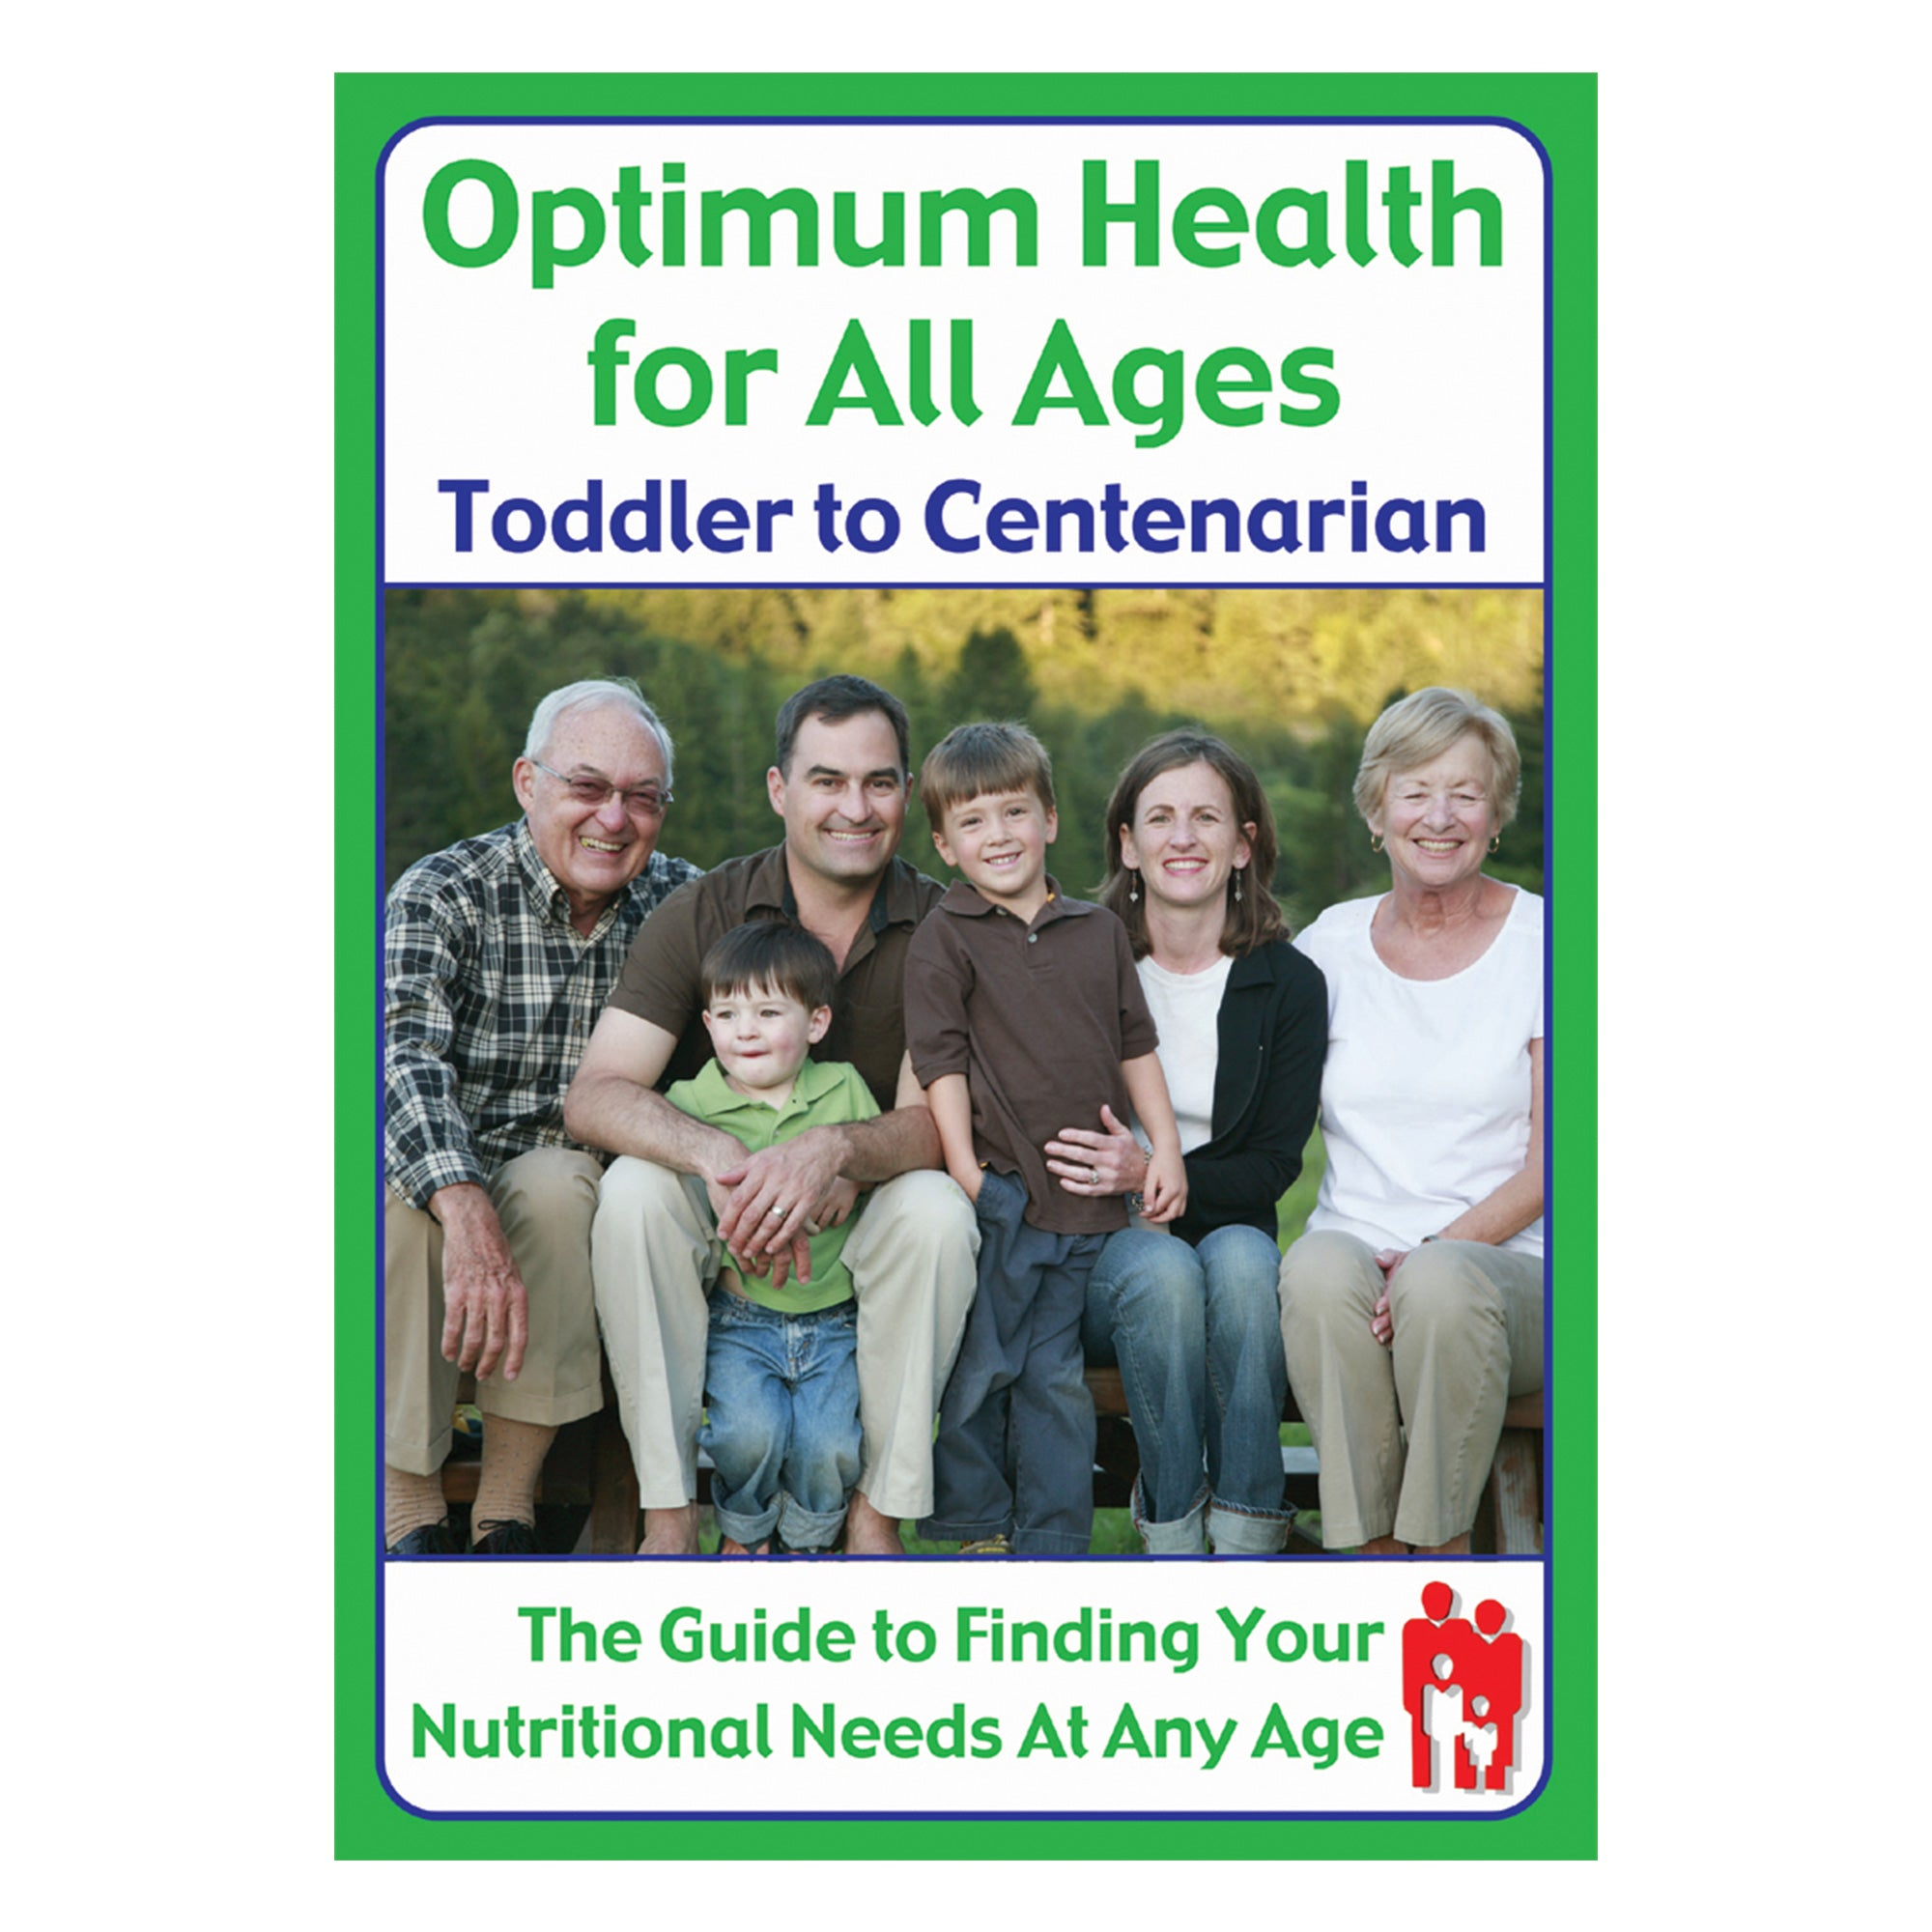 Optimum Health for All Ages